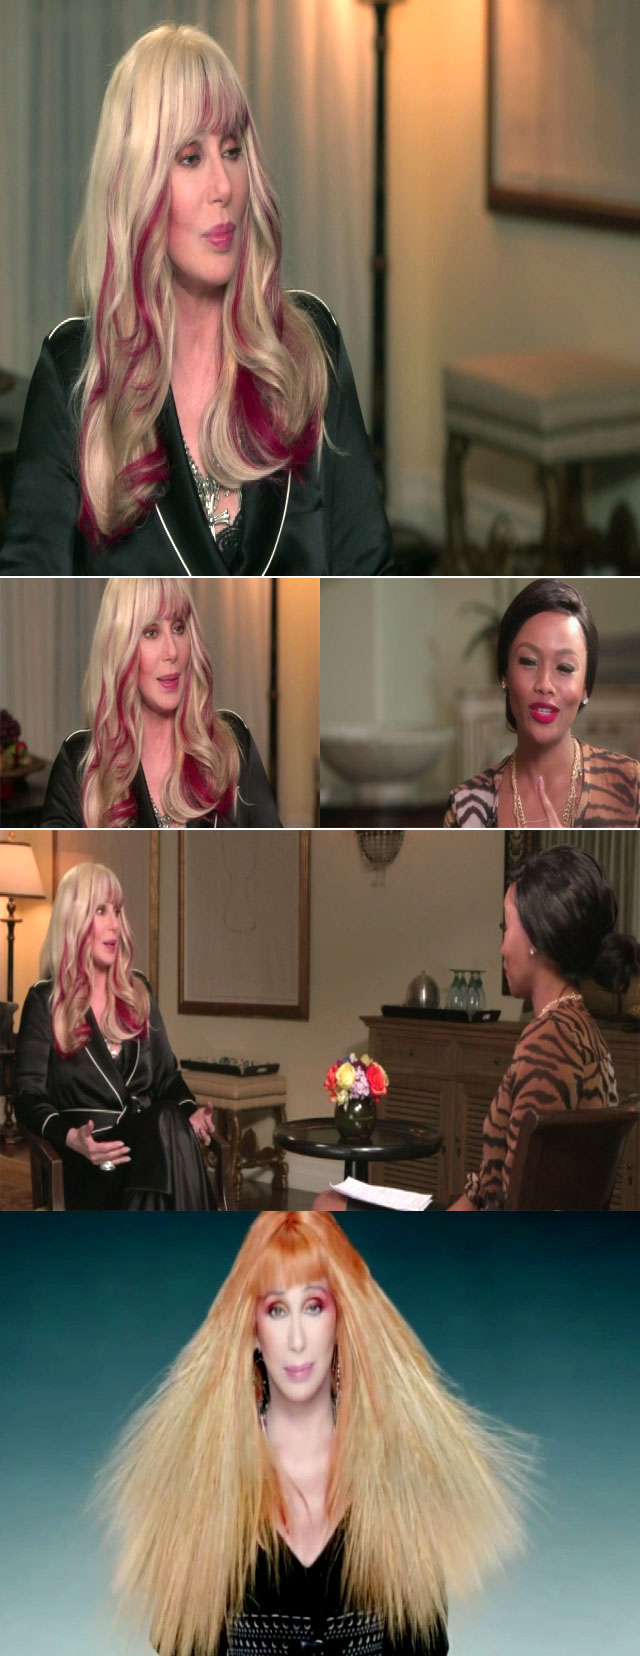 Top Billing interviews Cher